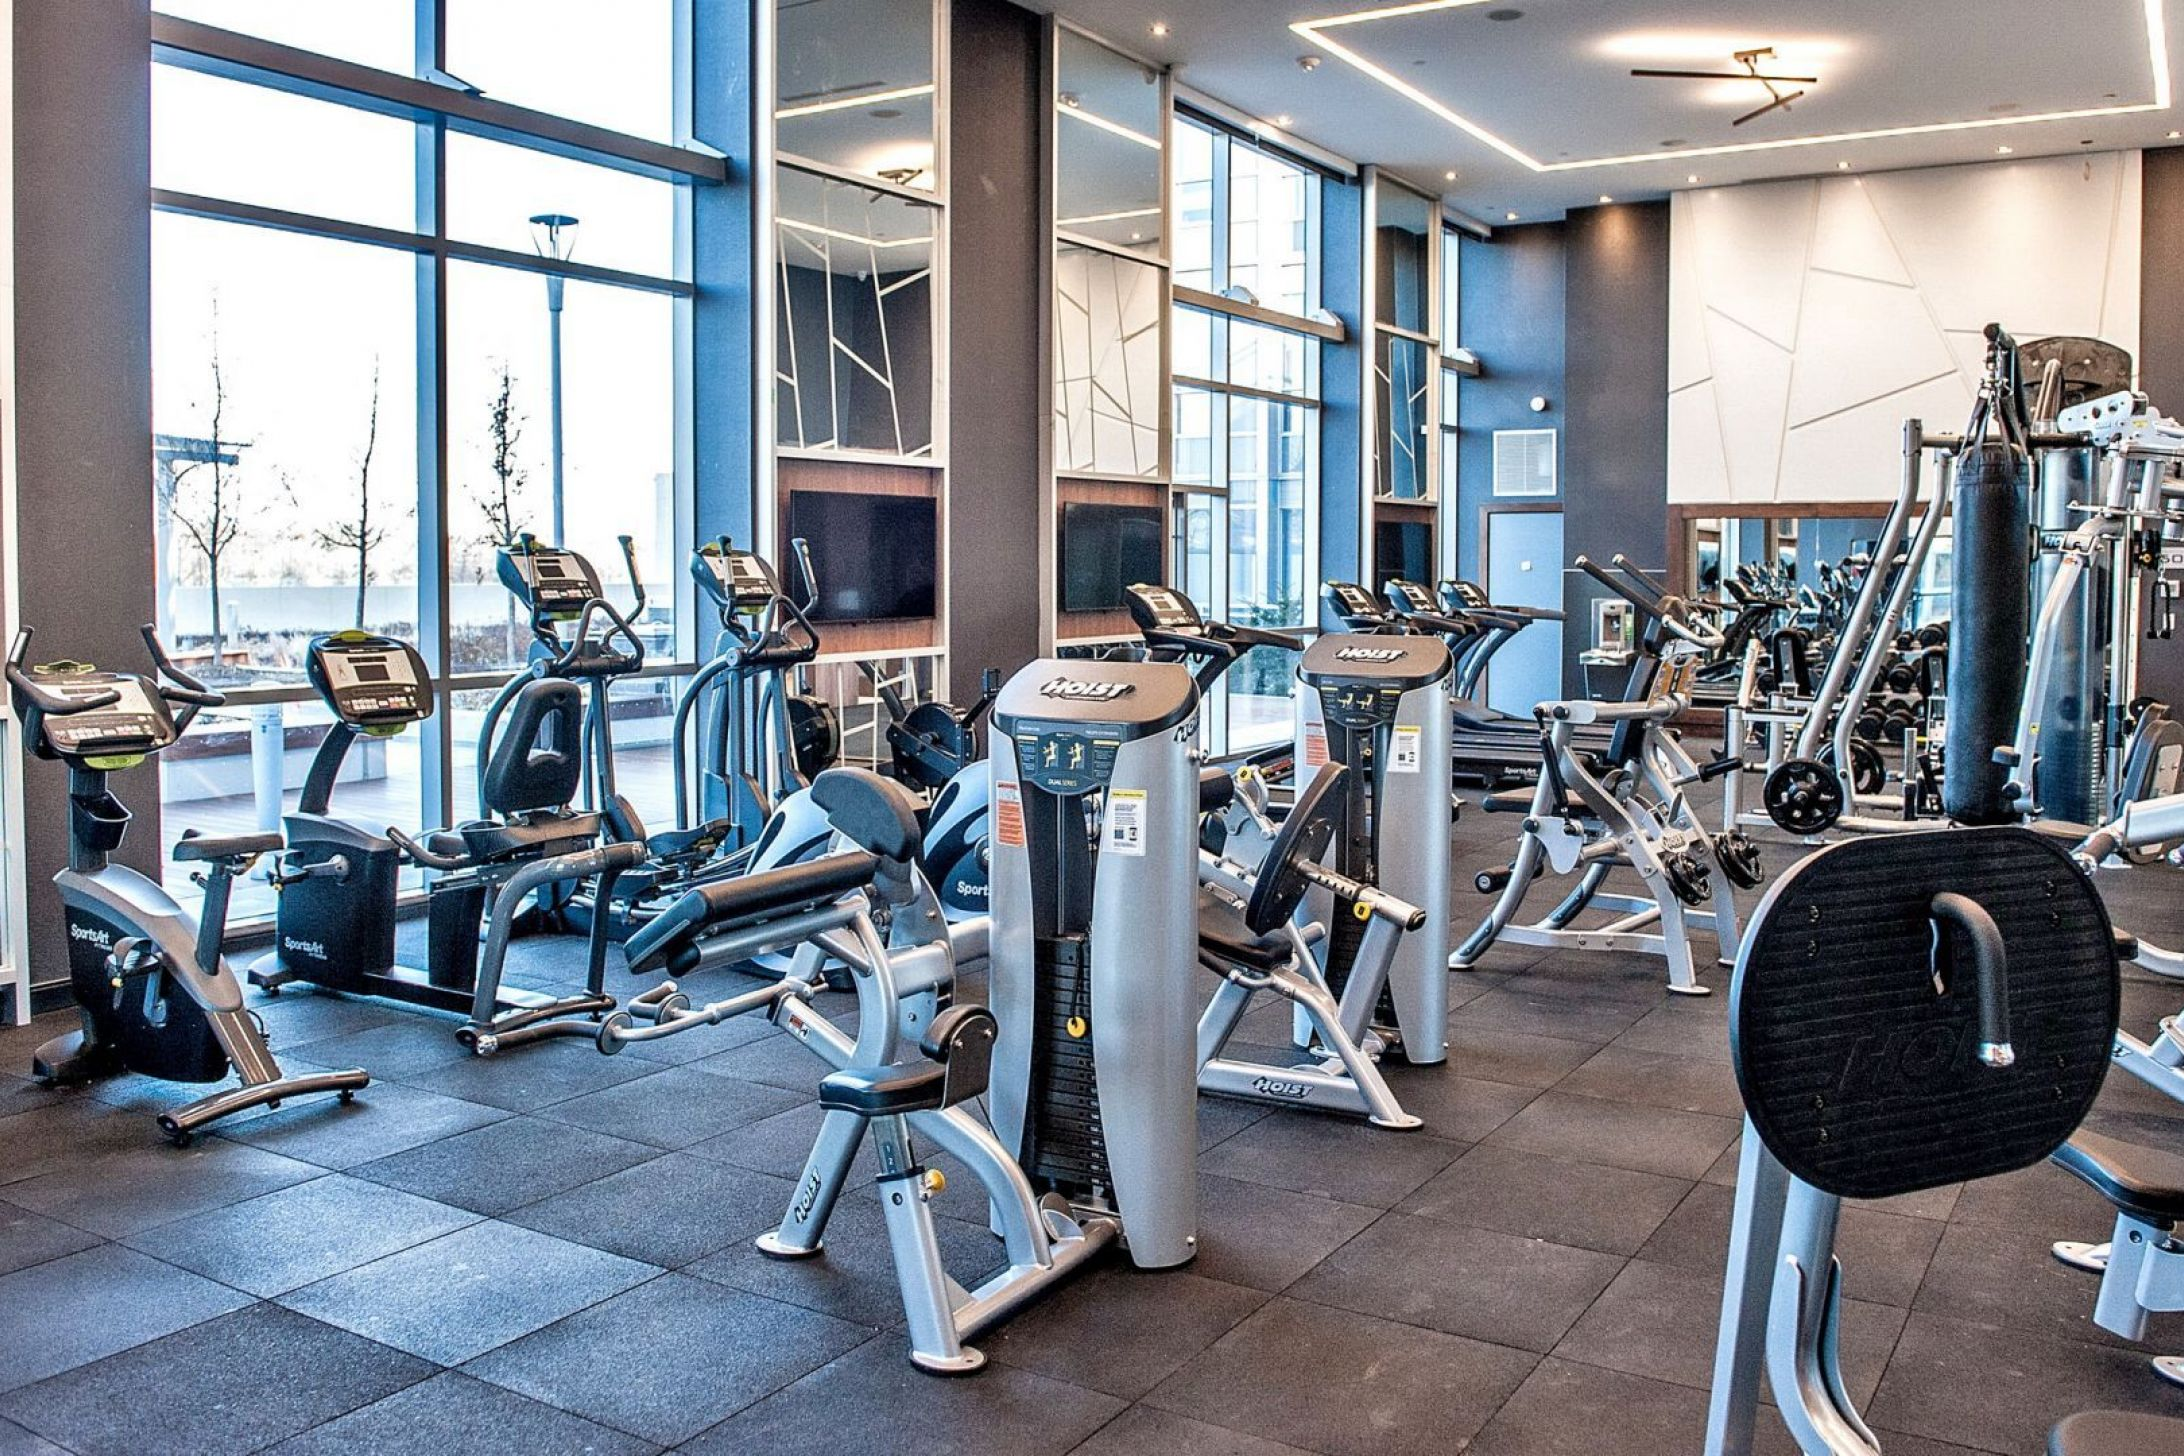 Gym at one of the Metrogate Condos Avani